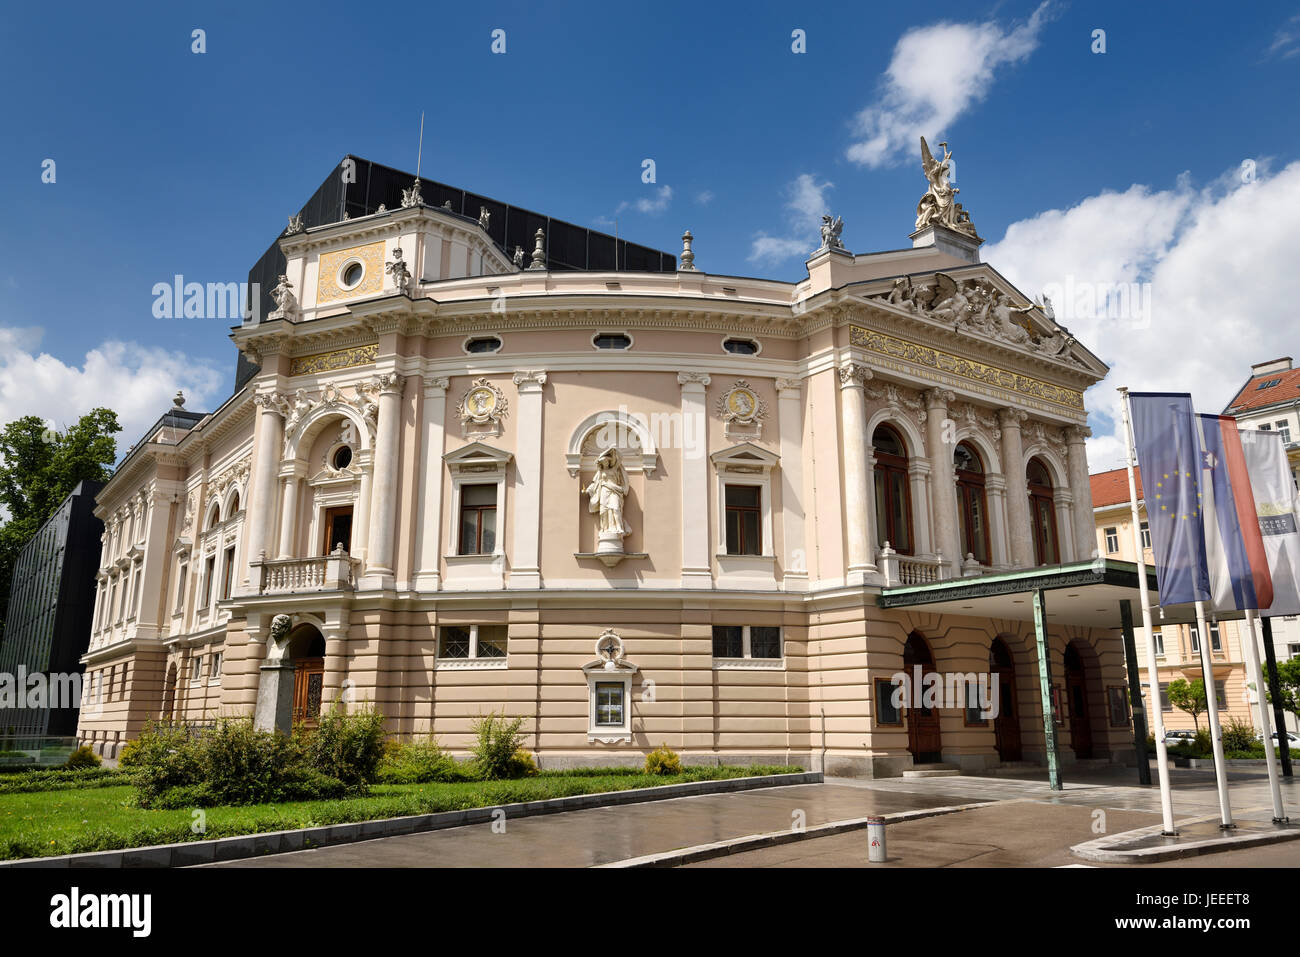 Neo Renaissance architecture of the Slovenian National Opera and Ballet Theatre of Ljubljana Slovenia in sun after - Stock Image